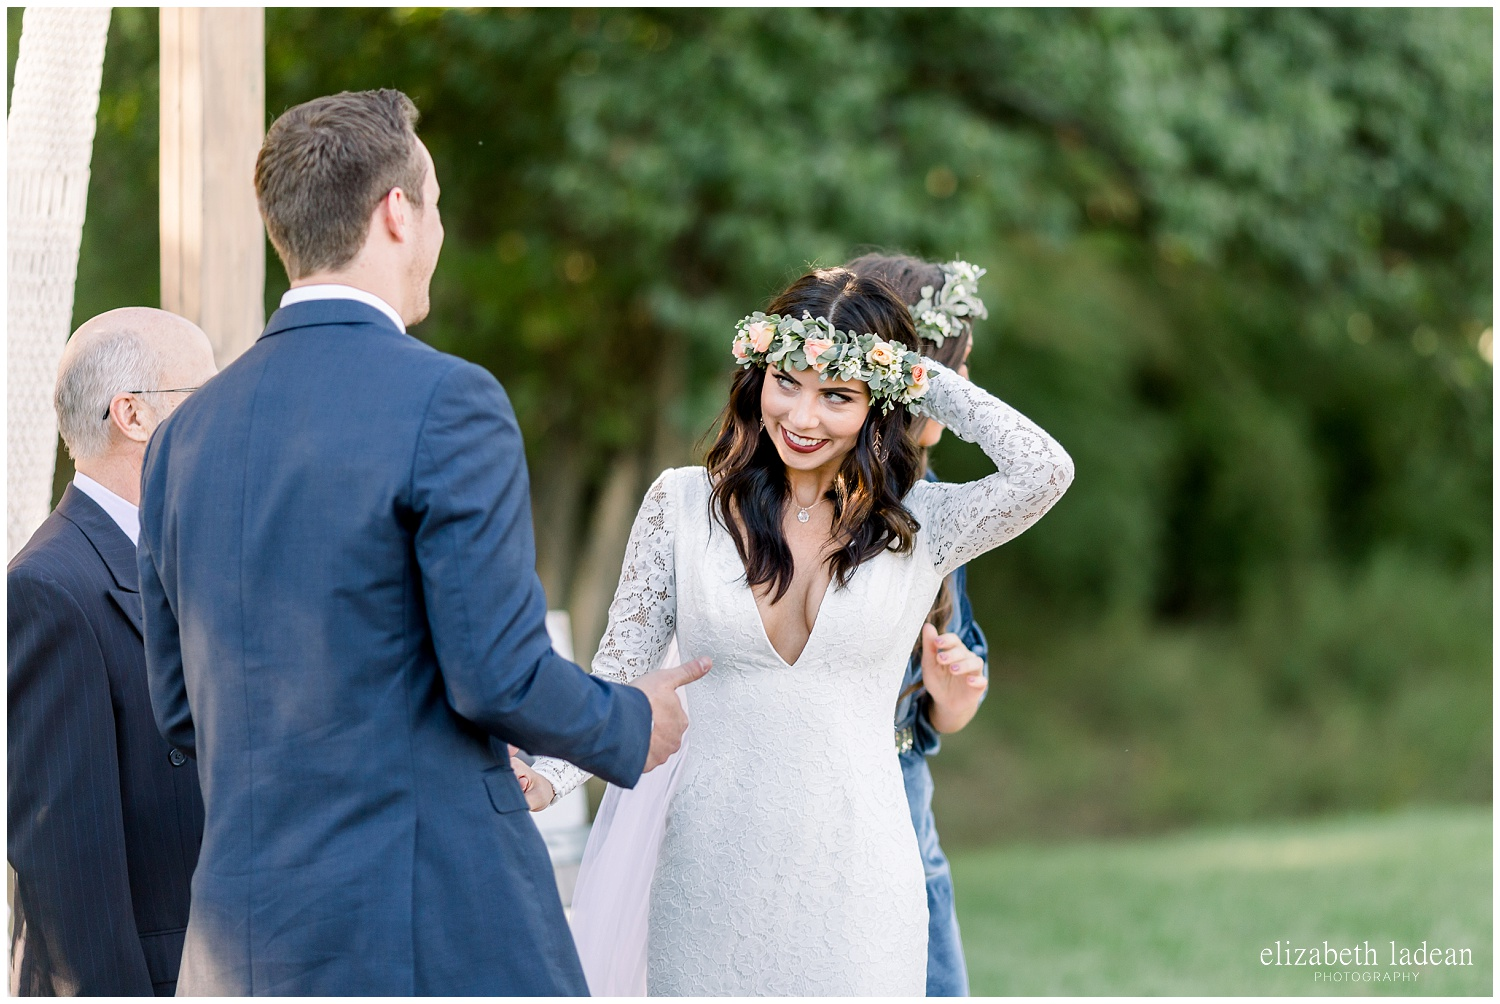 -behind-the-scenes-of-a-wedding-photographer-2018-elizabeth-ladean-photography-photo_3541.jpg